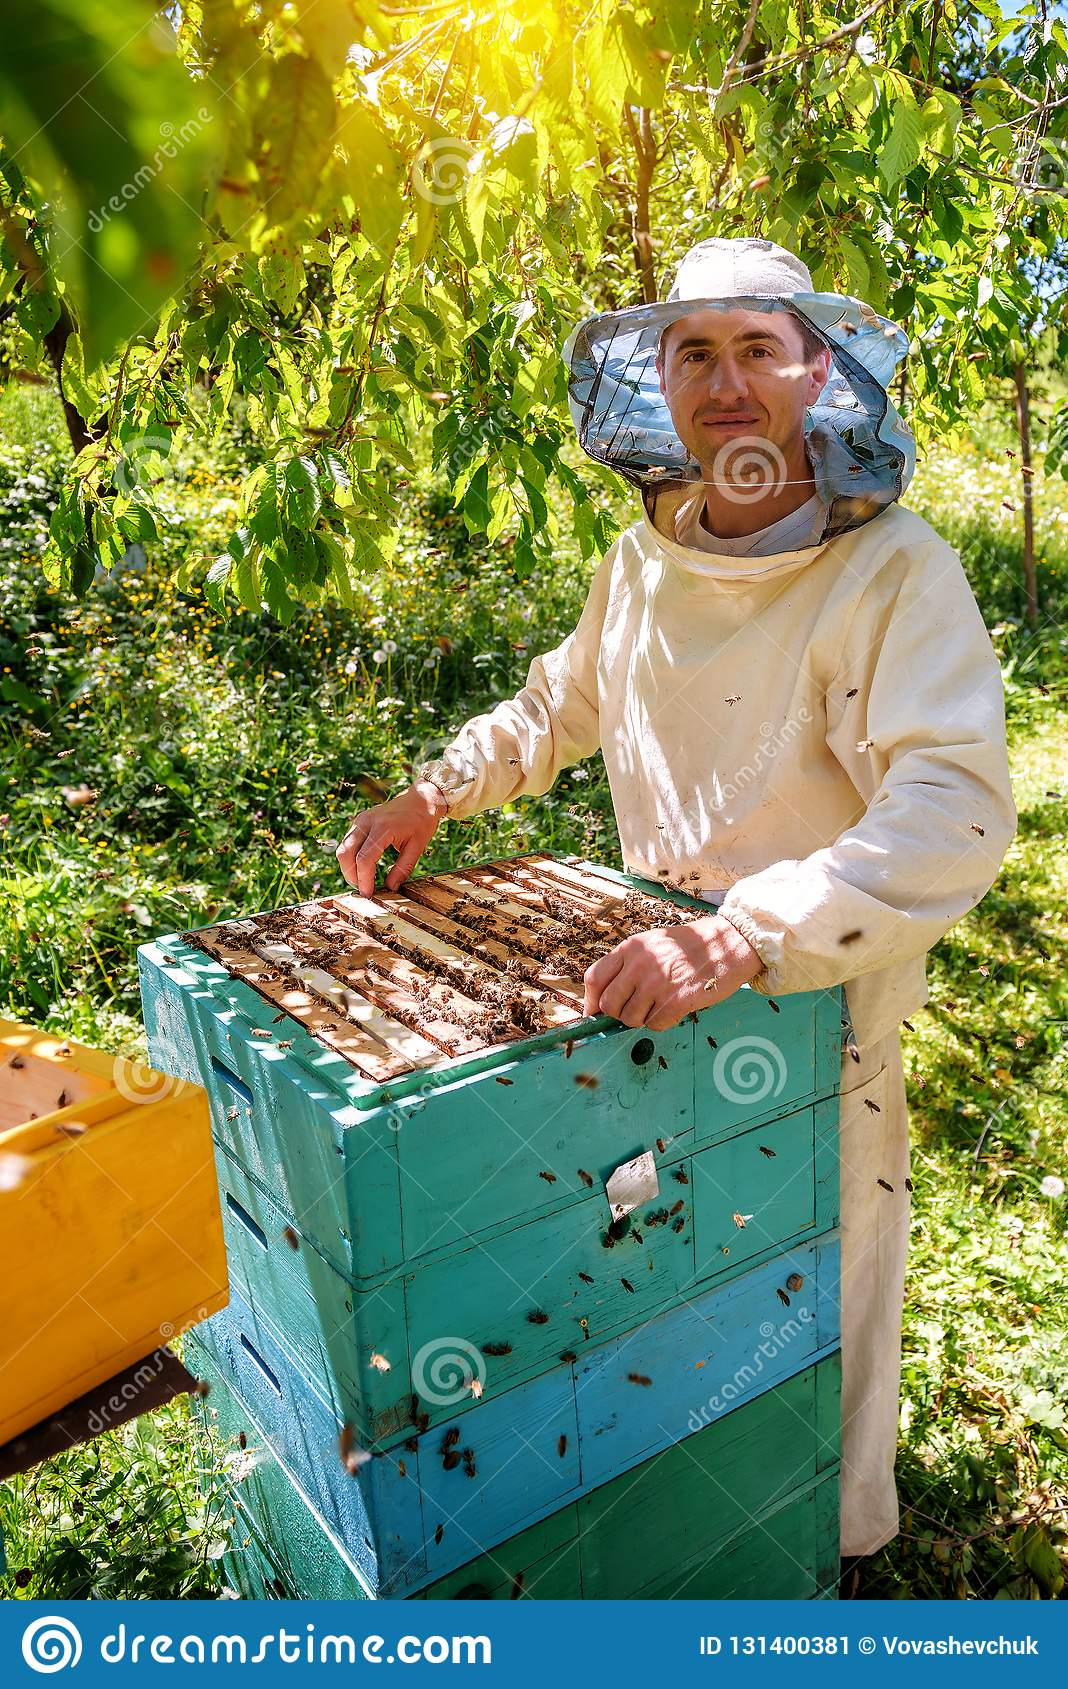 Beekeeper holding a honeycomb full of bees. Beekeeper inspecting honeycomb frame at apiary